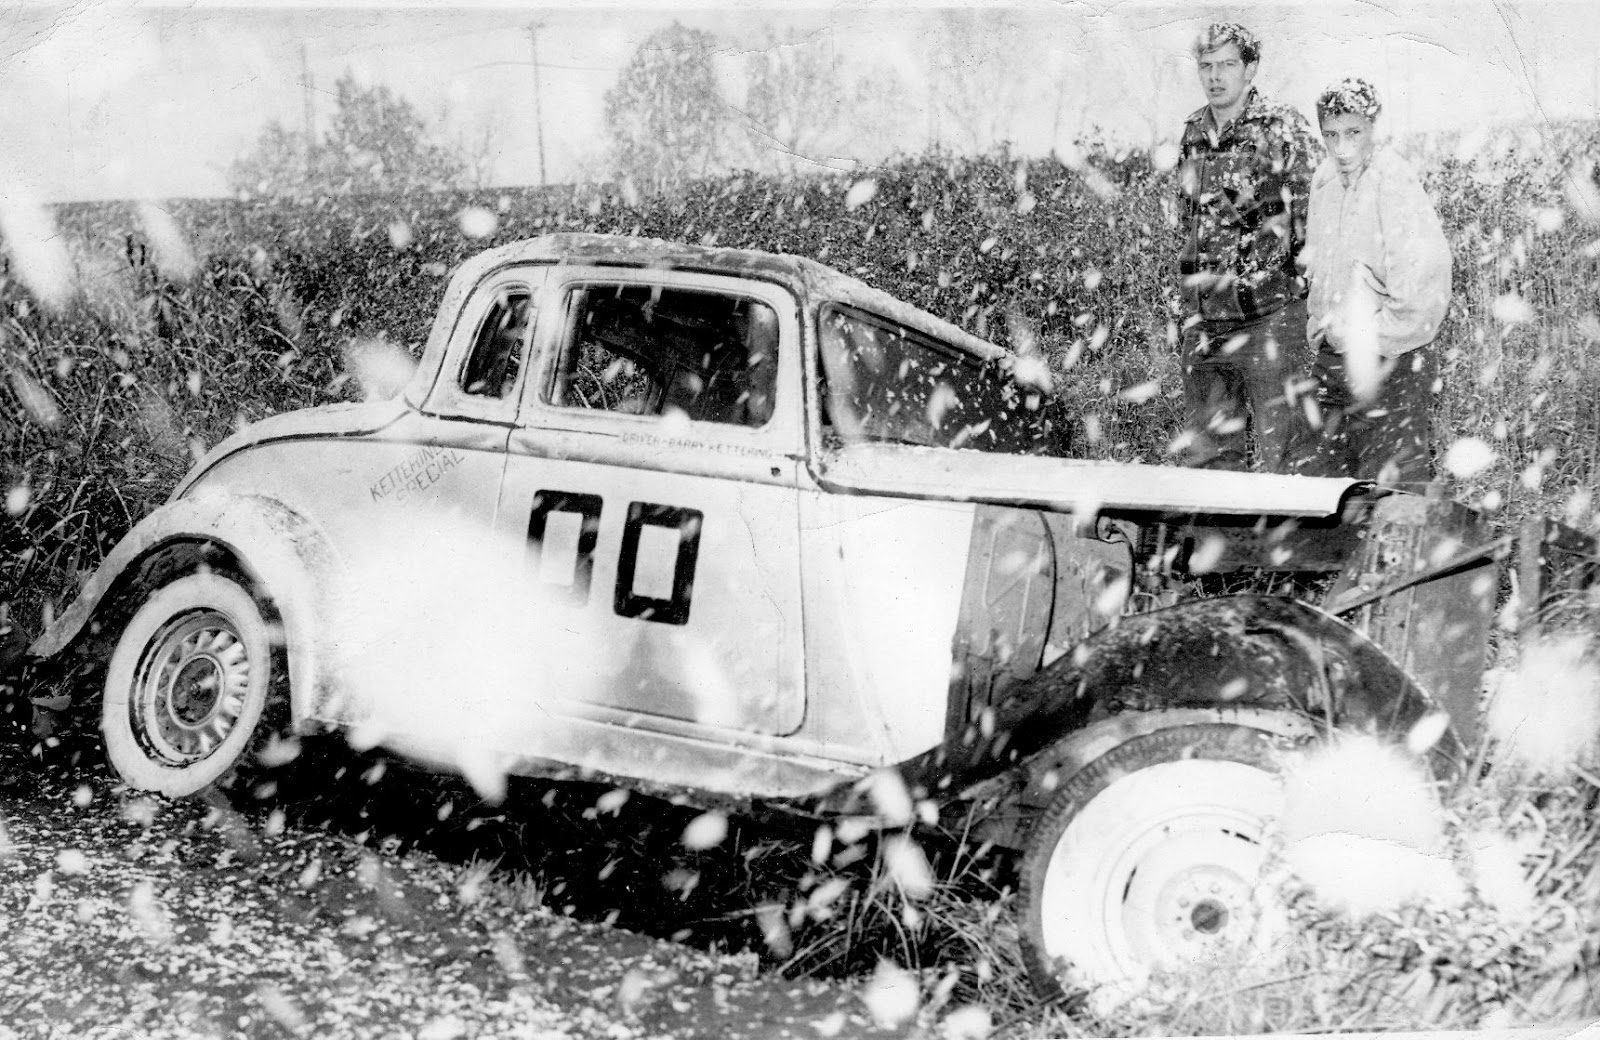 HOT RODS and JALOPIES: Stock Cars in Winter...Fort William Ontario...